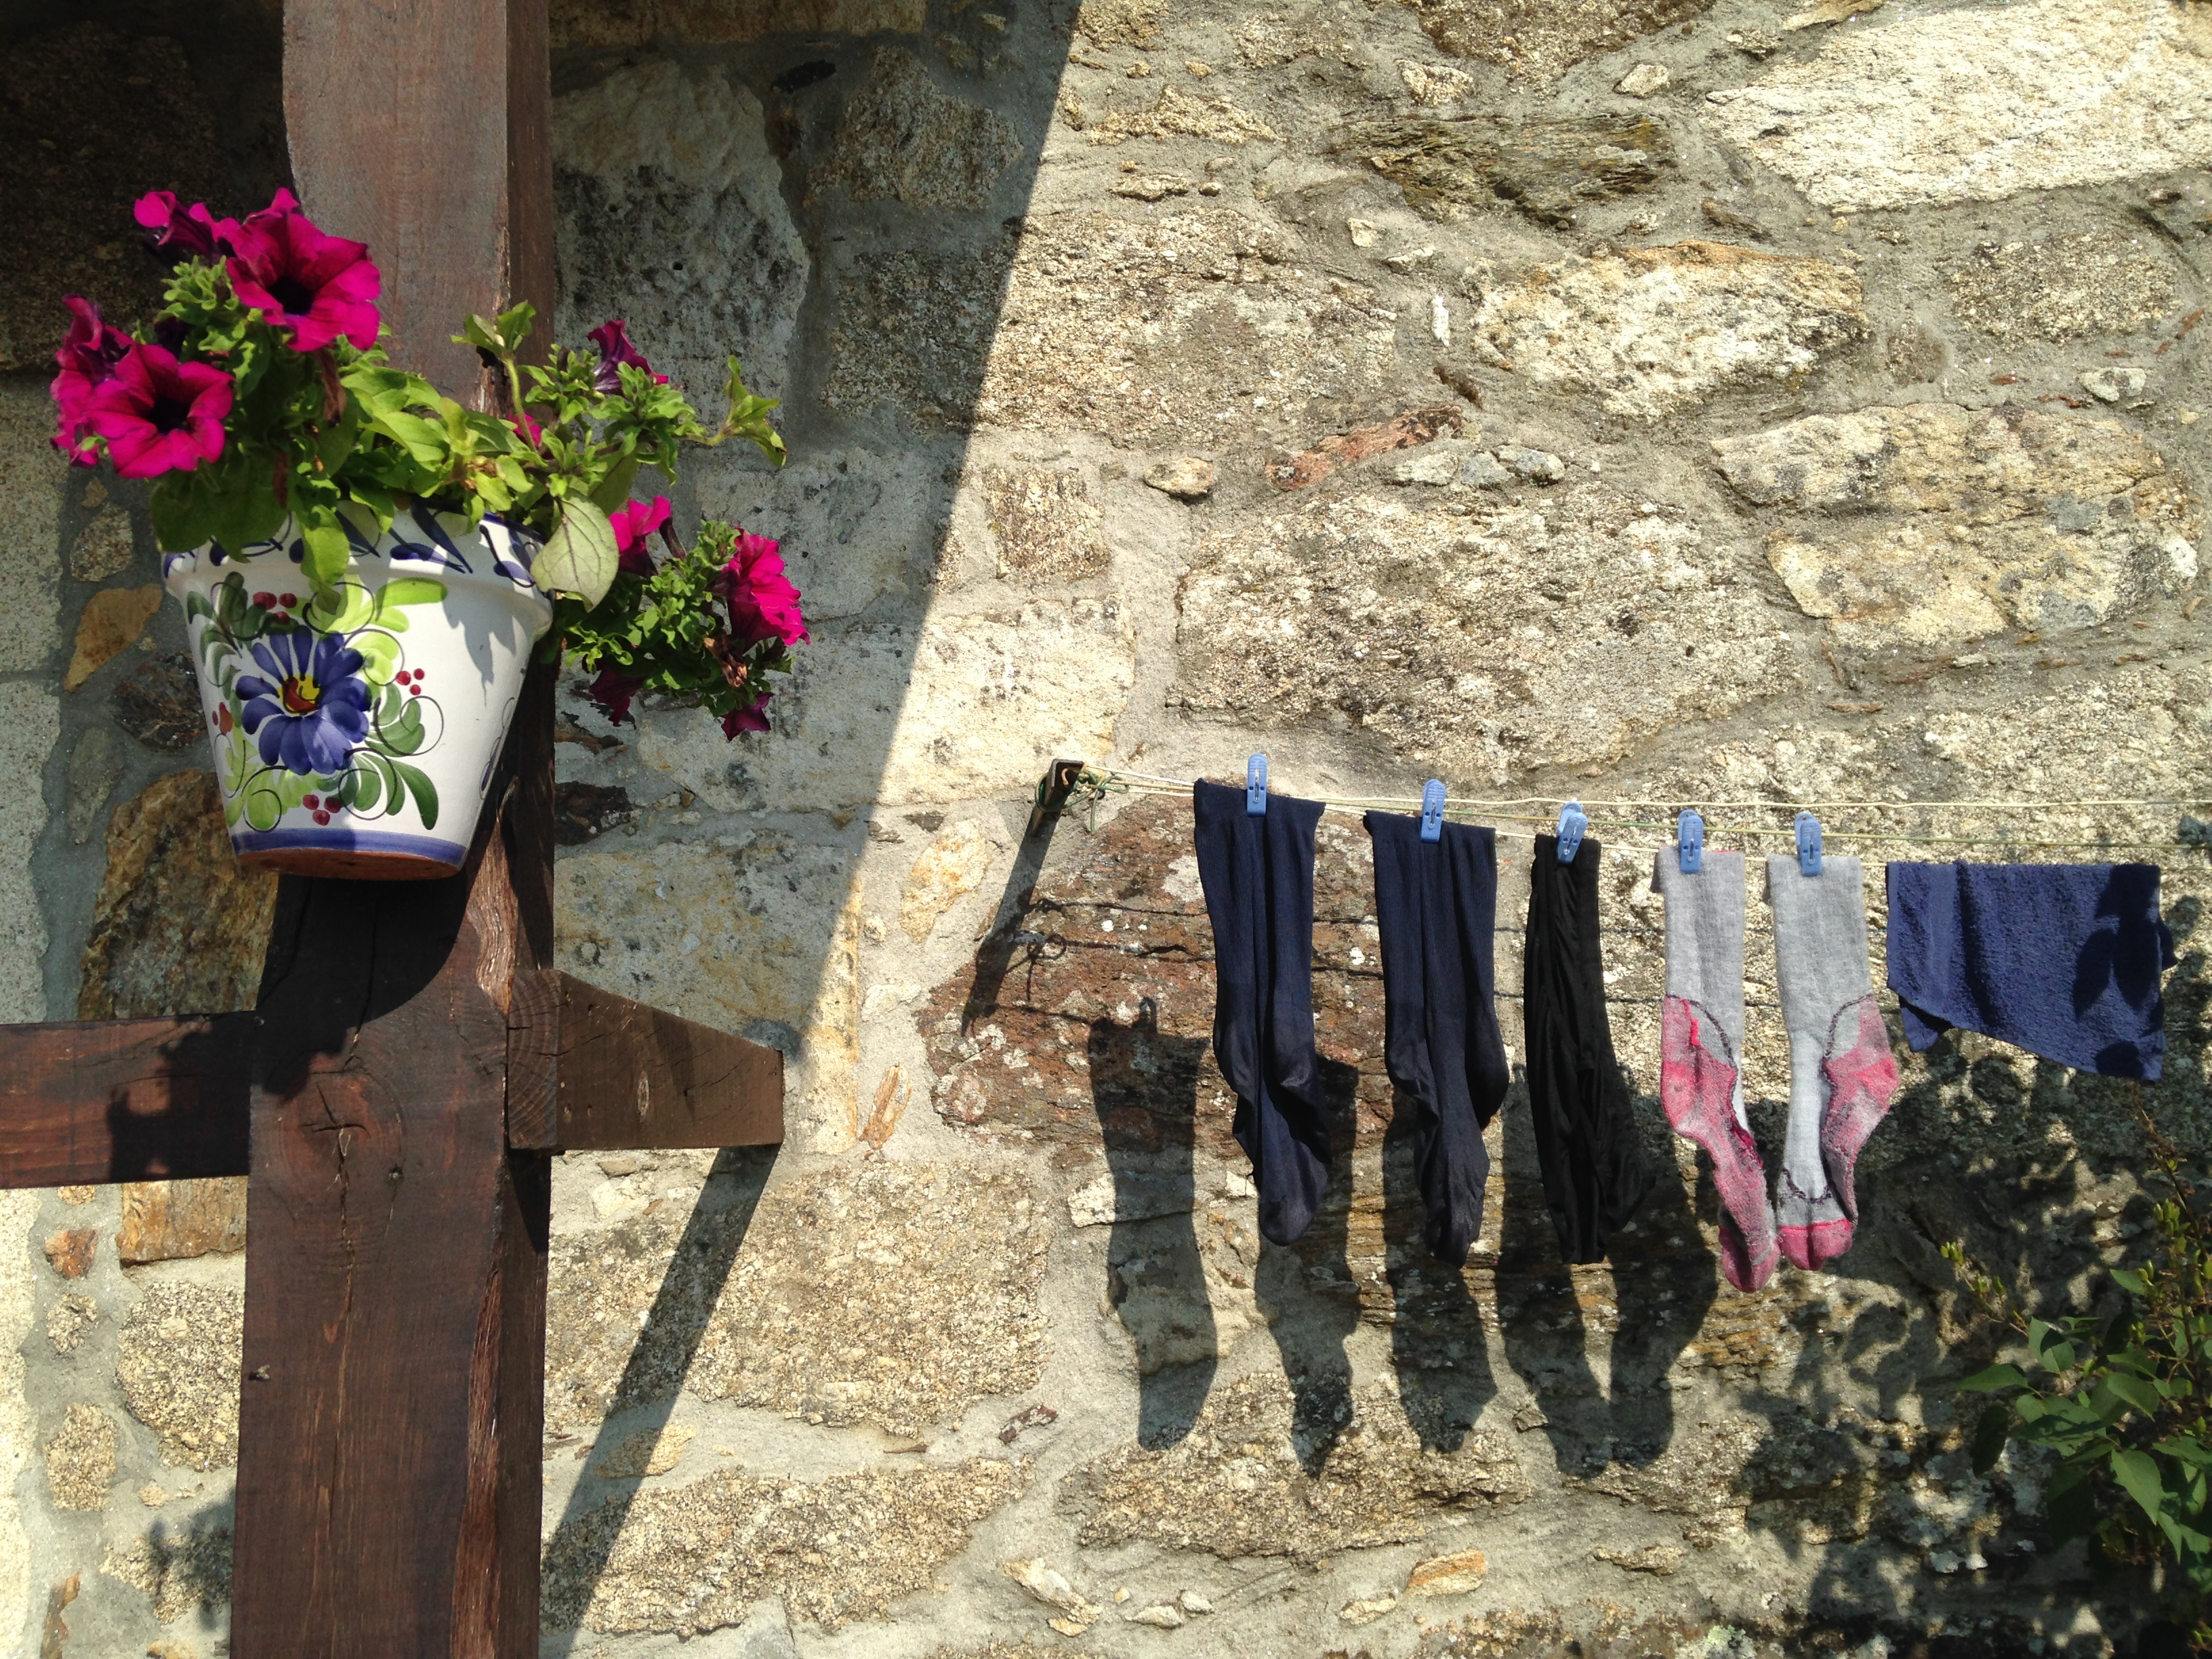 socks on laundry line, camino